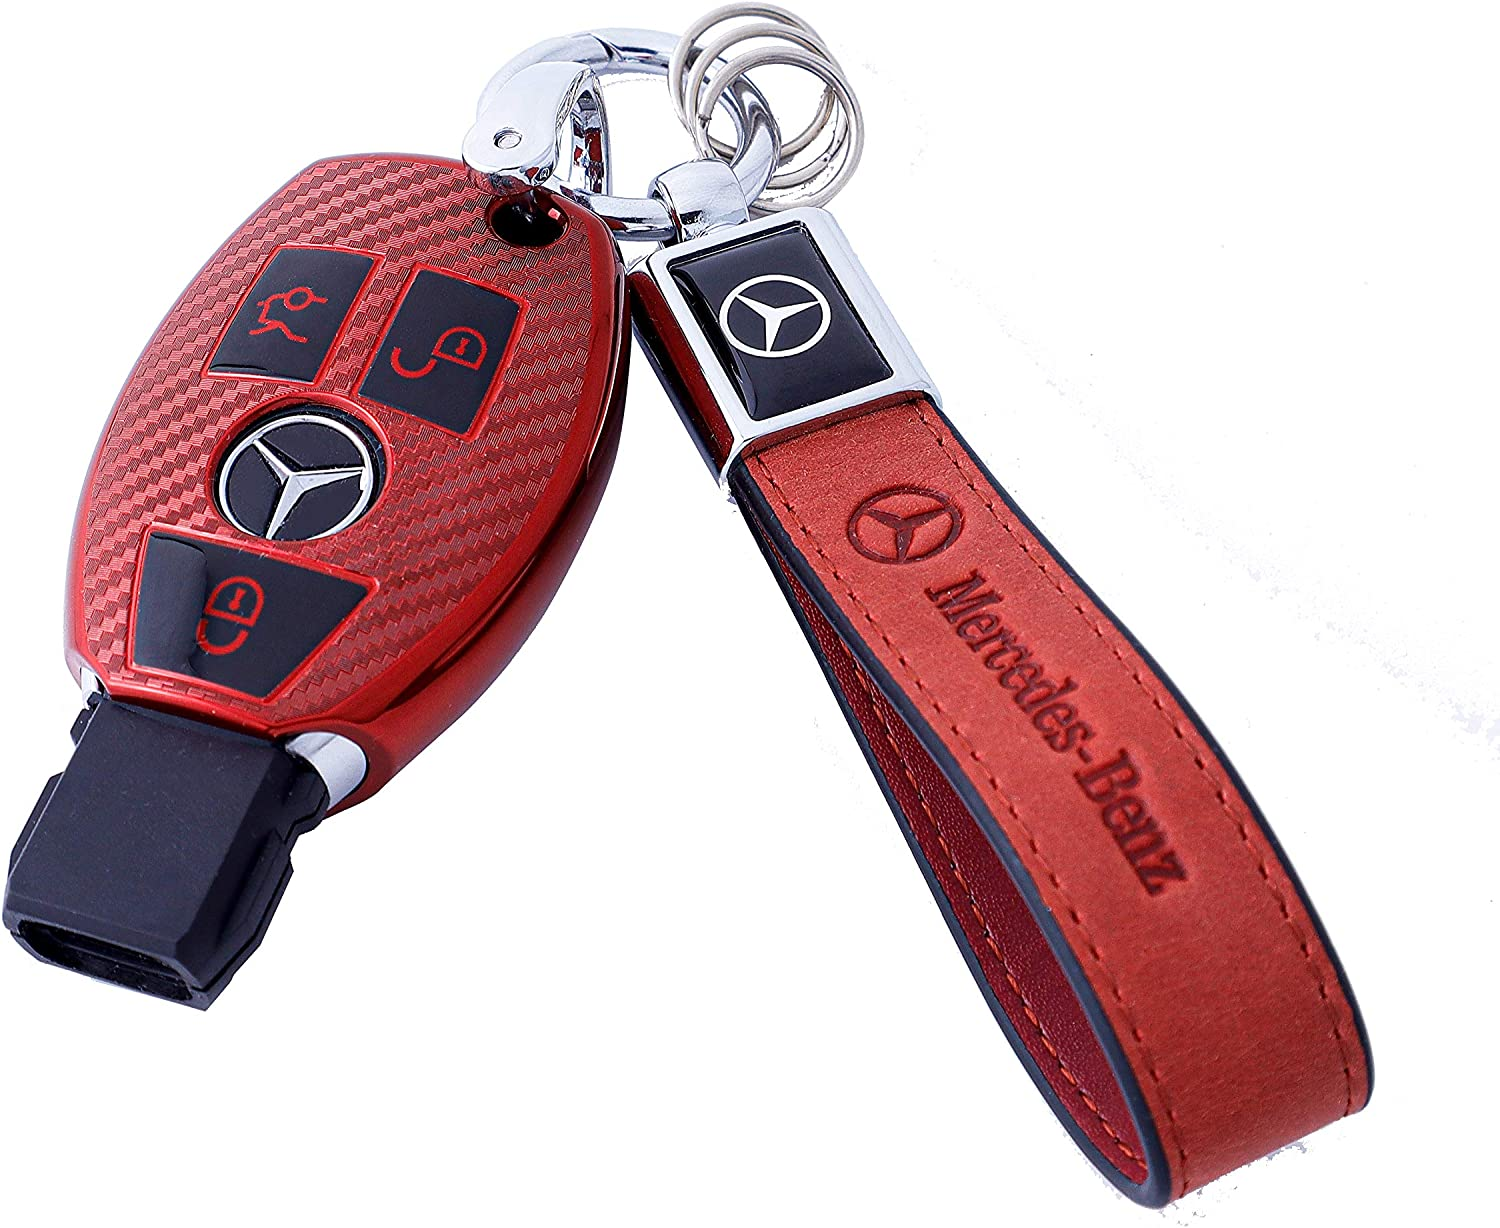 for Mercedes Benz Key Fob Cover Premium Soft TPU Carbon Fiber Key Case Cover Compatible with Mercedes Benz C E S M CLS CLK G Class Keyless Smart Key Fob+1pac Keychain Pink